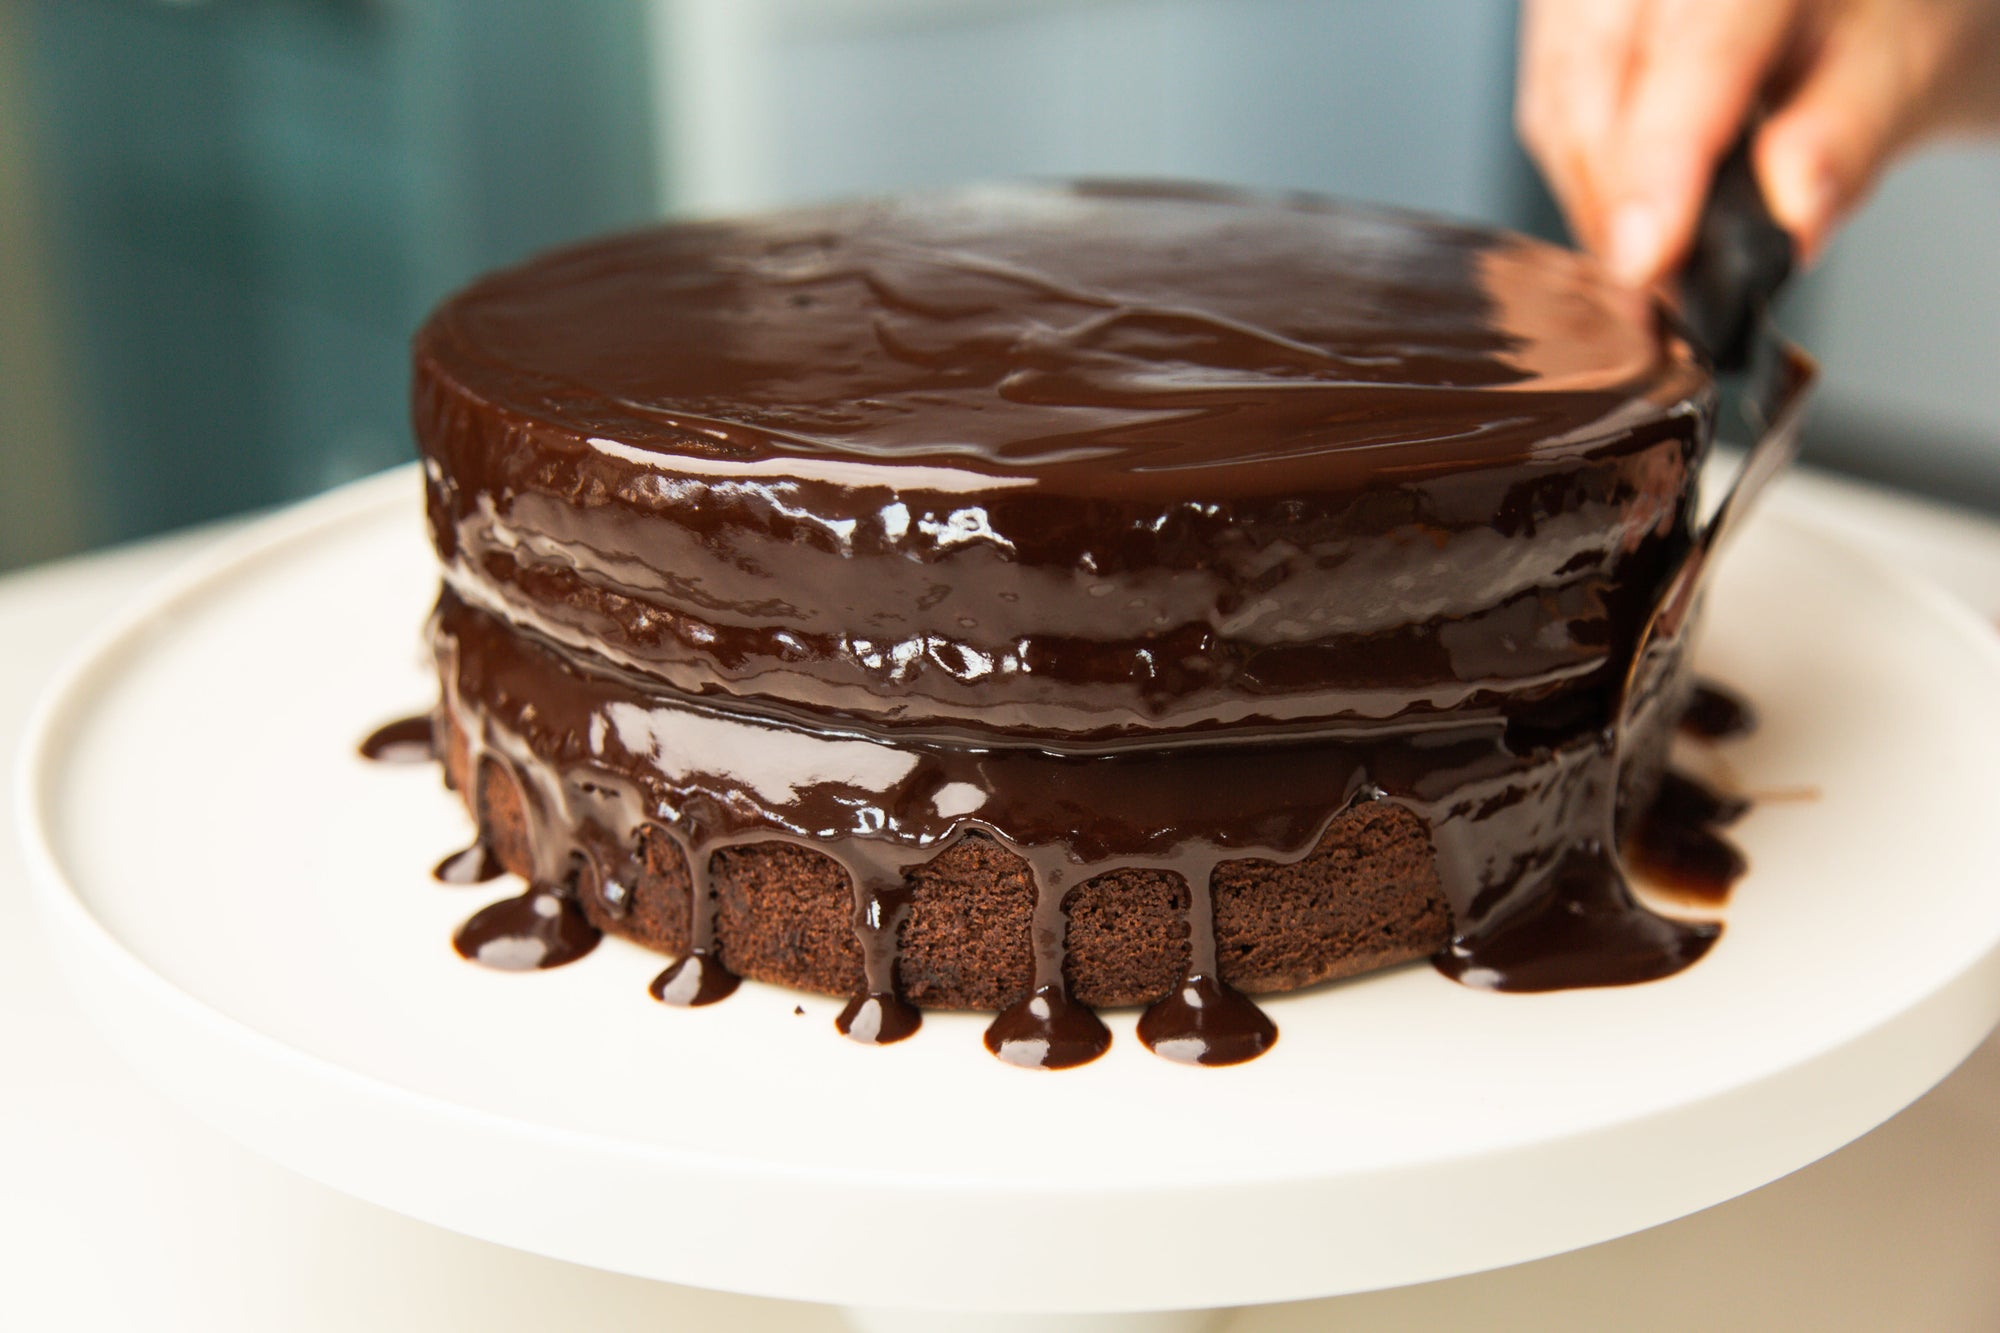 Luscious Chocolate Sponge Cake with rich chocolate Ganache (20cm) - ubaked